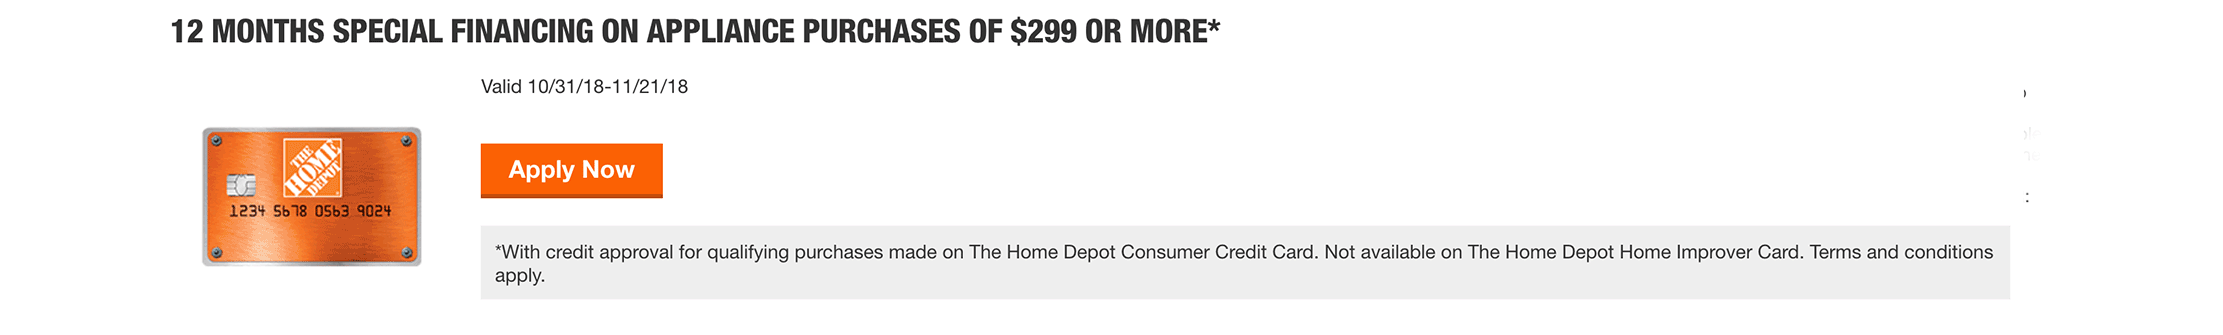 home depot financing kitchen remodel best hoods credit card offers - the